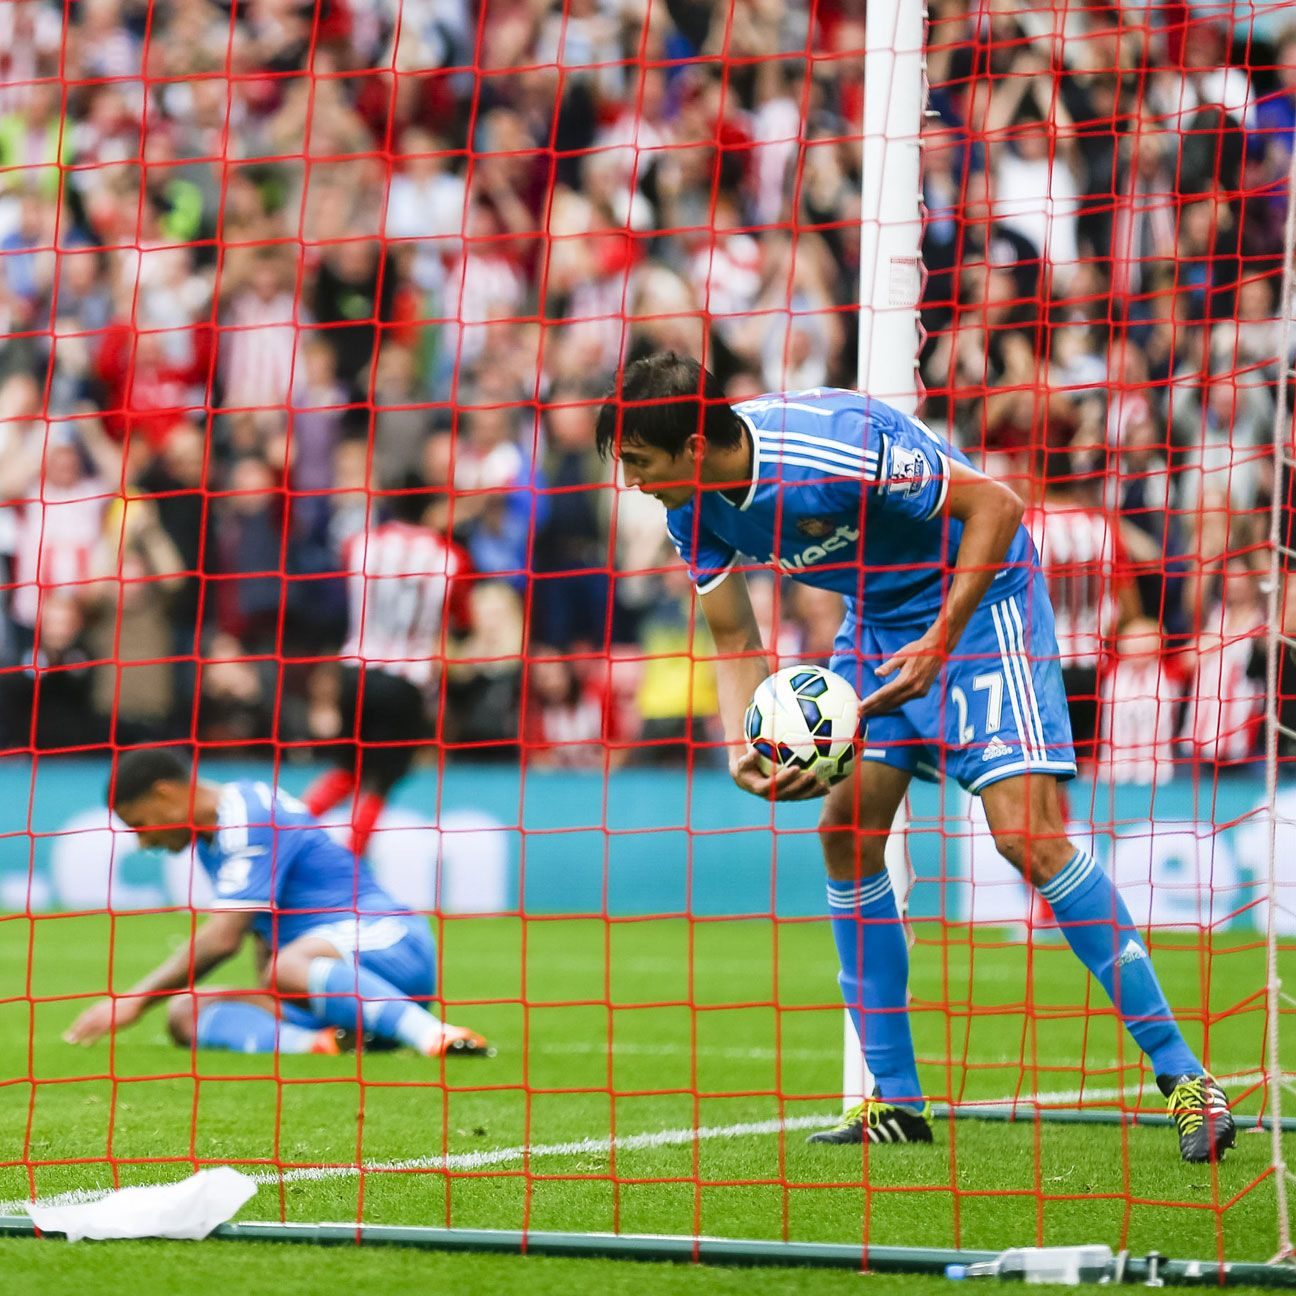 Sunderland will be looking to exact revenge on Southampton for last October's 8-0 walloping.